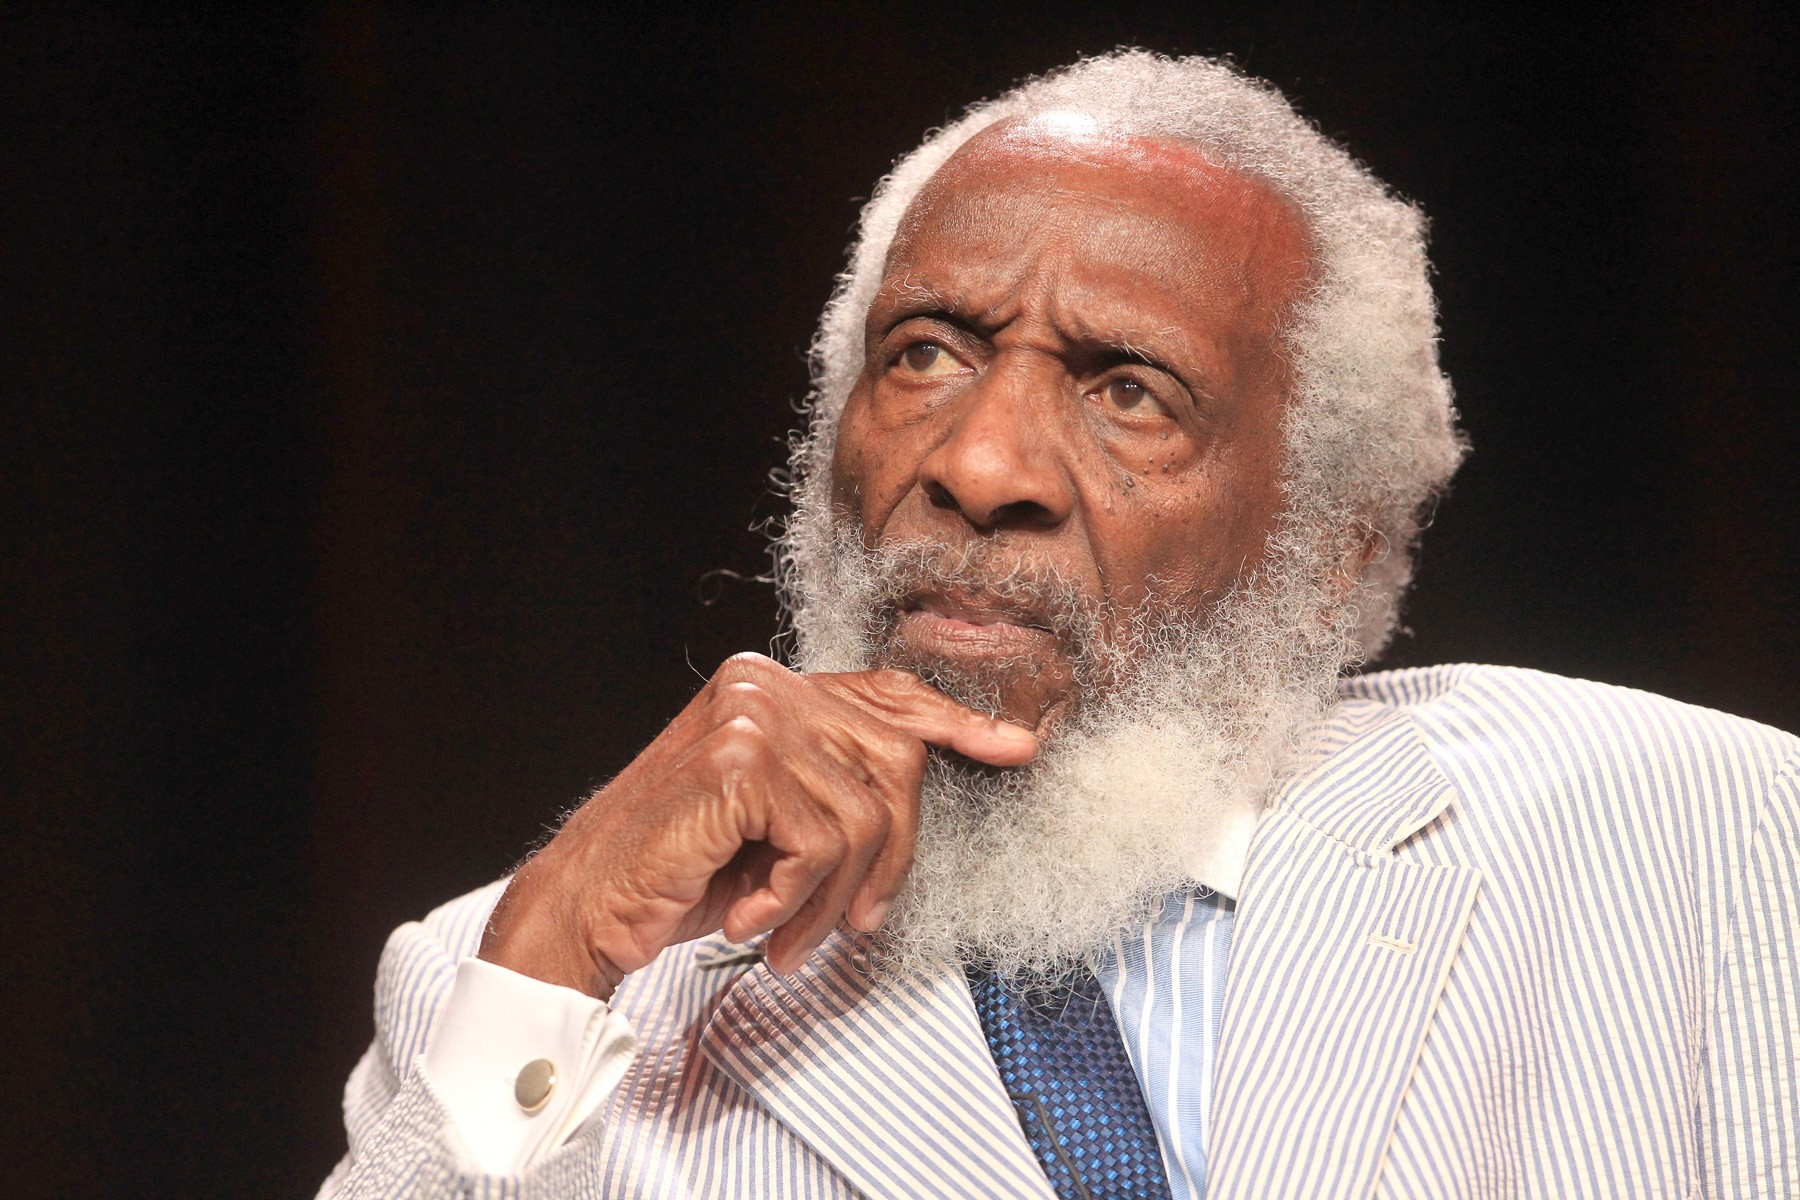 https://vistanews.ru/uploads/posts/2017-08/1503205306_dick_gregory.jpeg